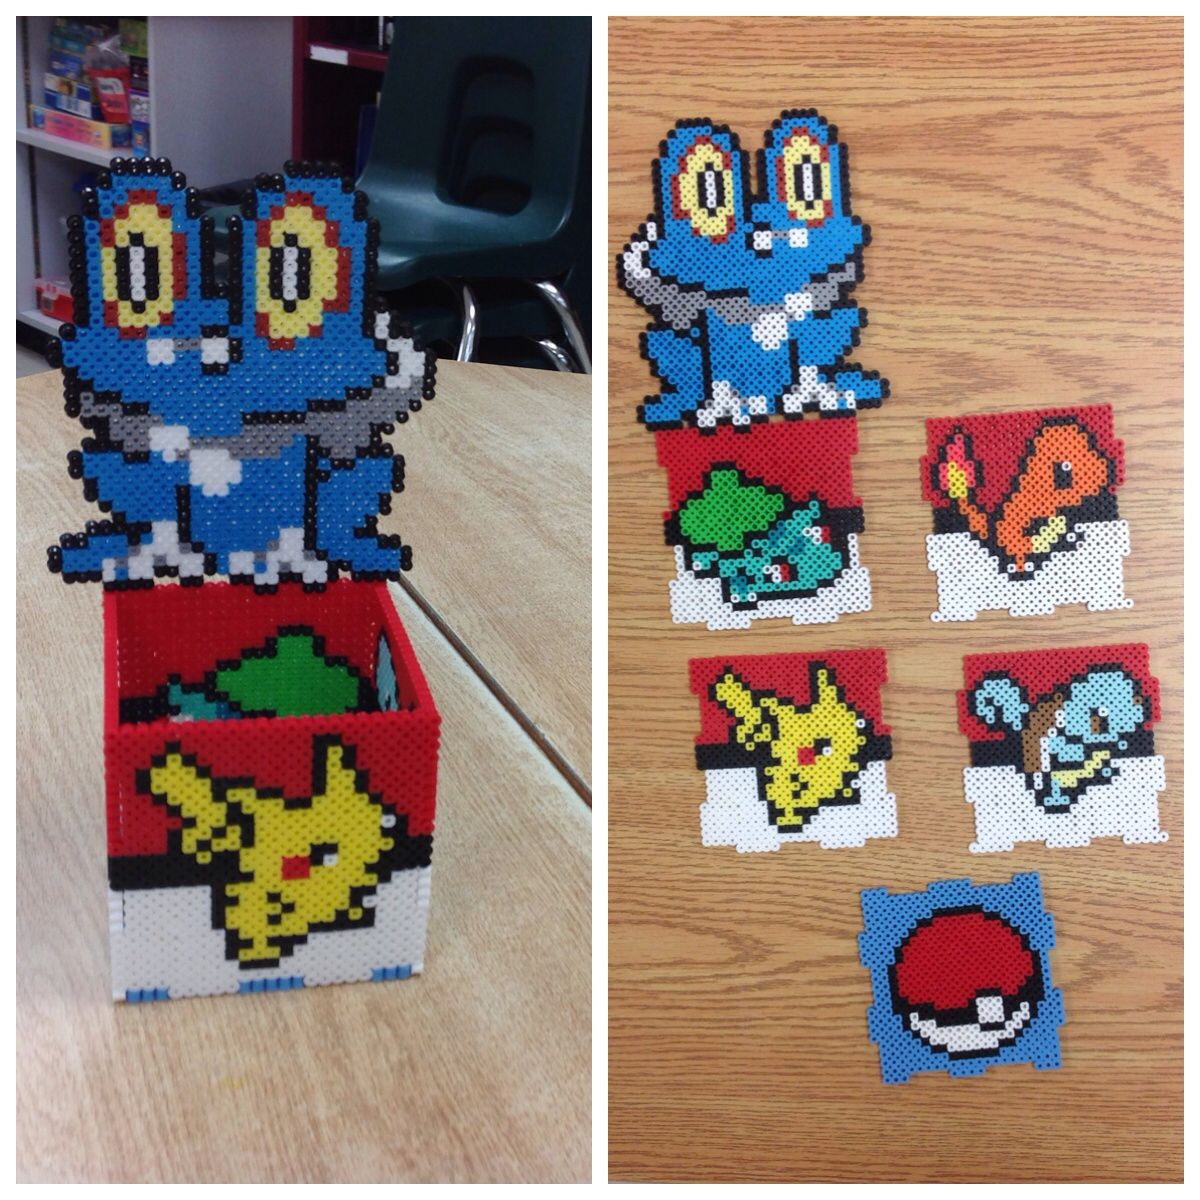 medium resolution of pokemon box perler beads by amanda collison easy perler bead patterns 3d perler bead